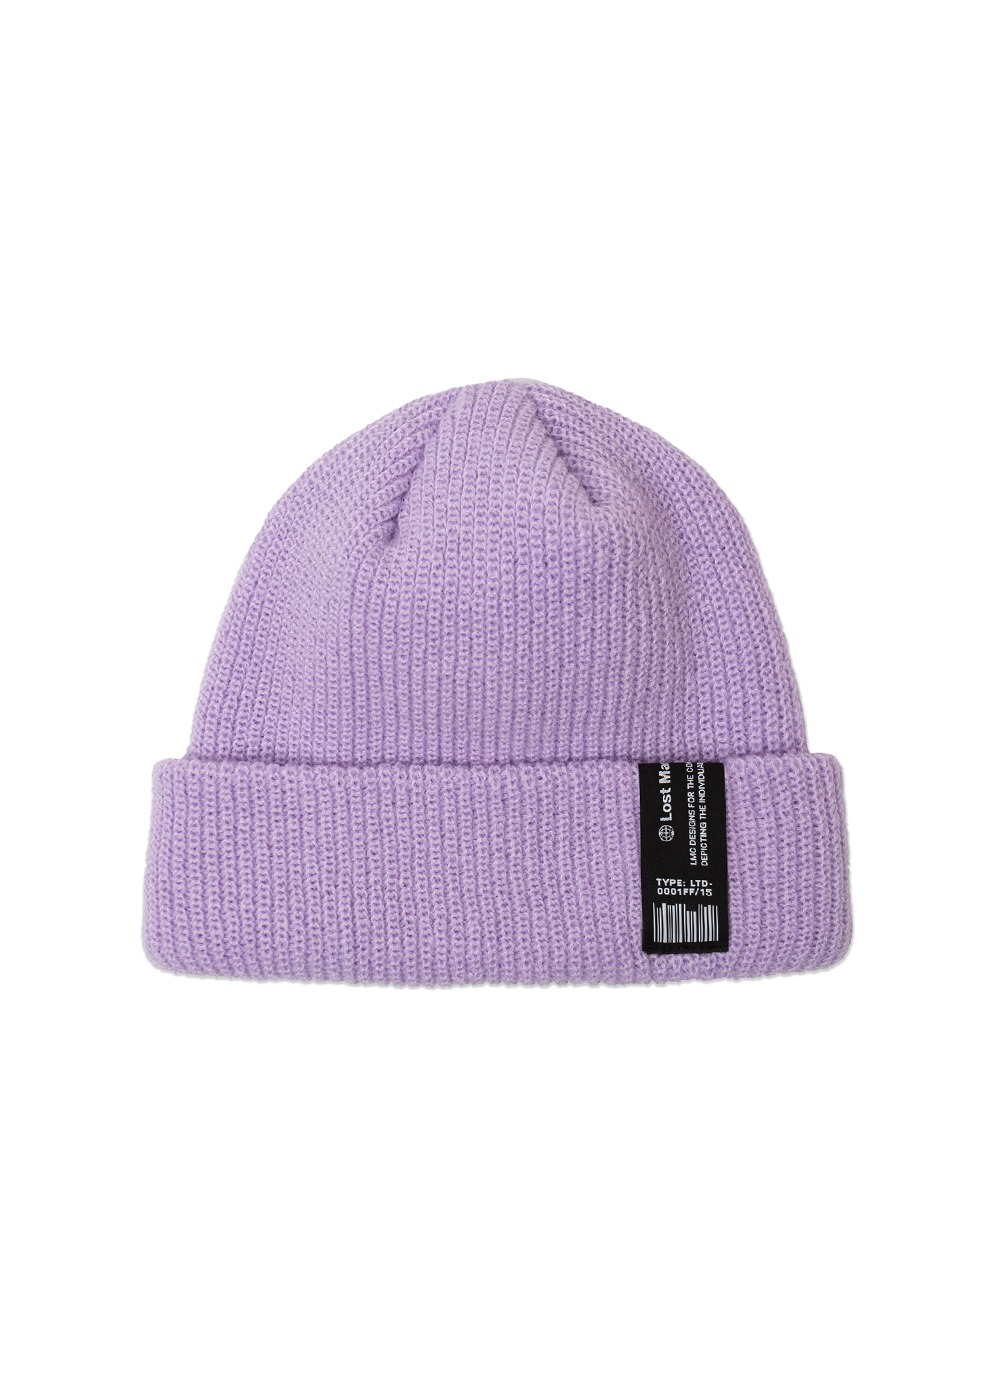 LMC LABEL SHORT BEANIE lt. purple